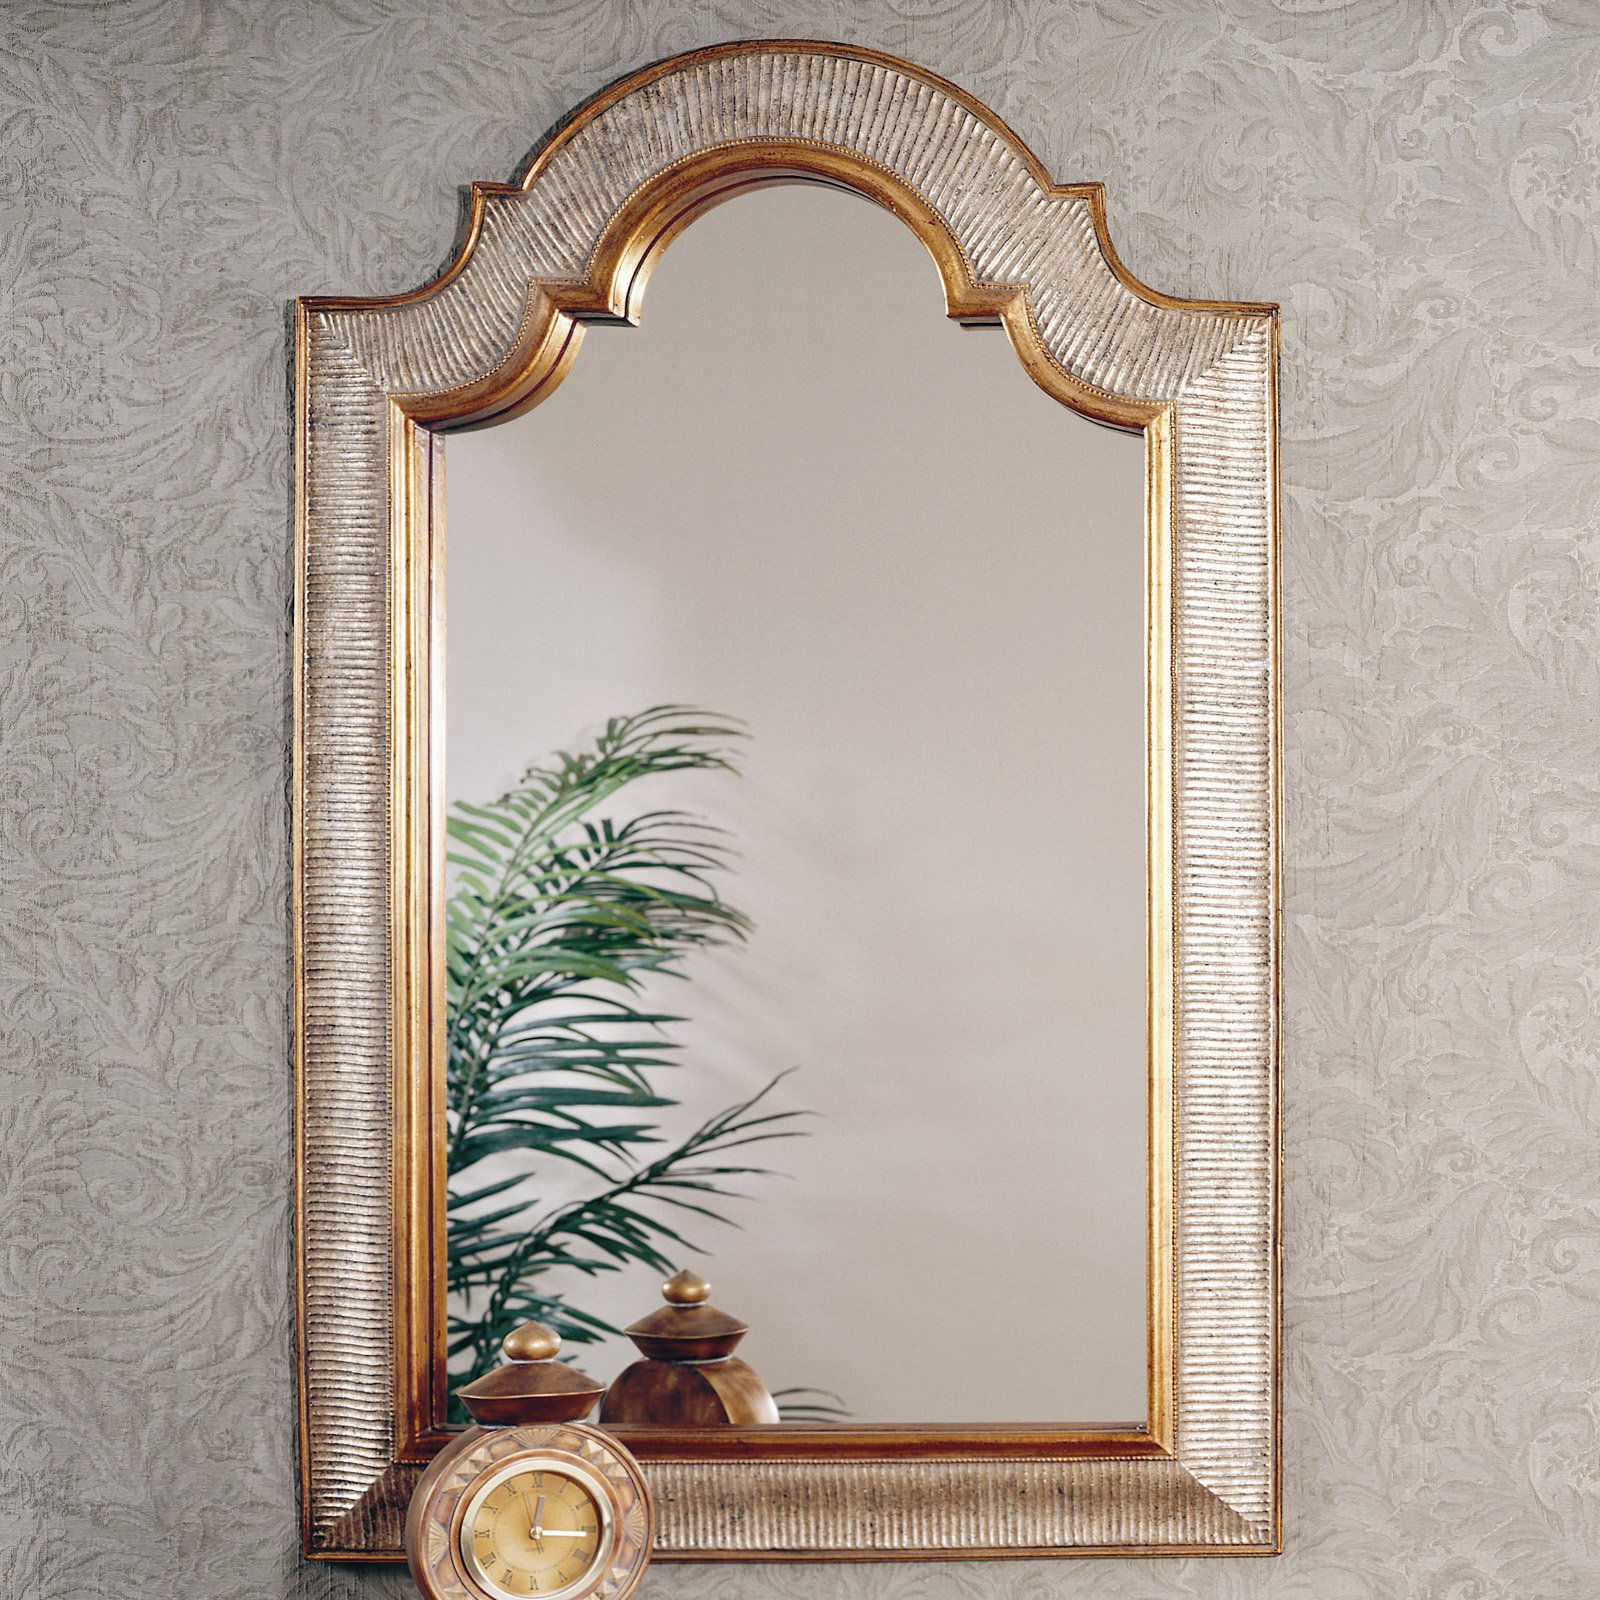 Decorative Mirror Gold Silver Arched Decorative Mirror 29w X 45h In